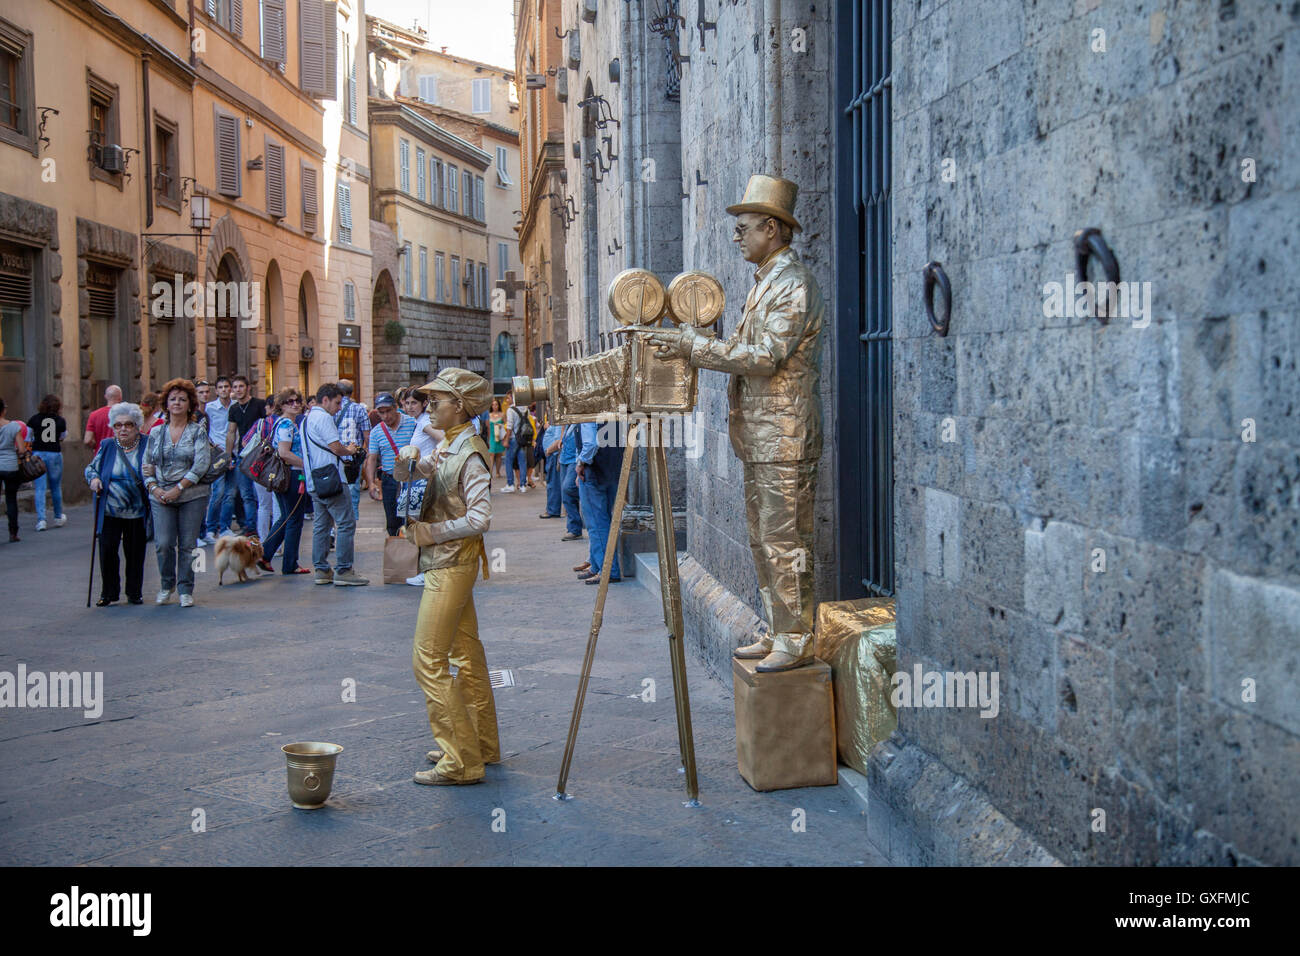 Street performers in Sienna, Italy. Street mimes acting like old time movie camera man and assitant. - Stock Image